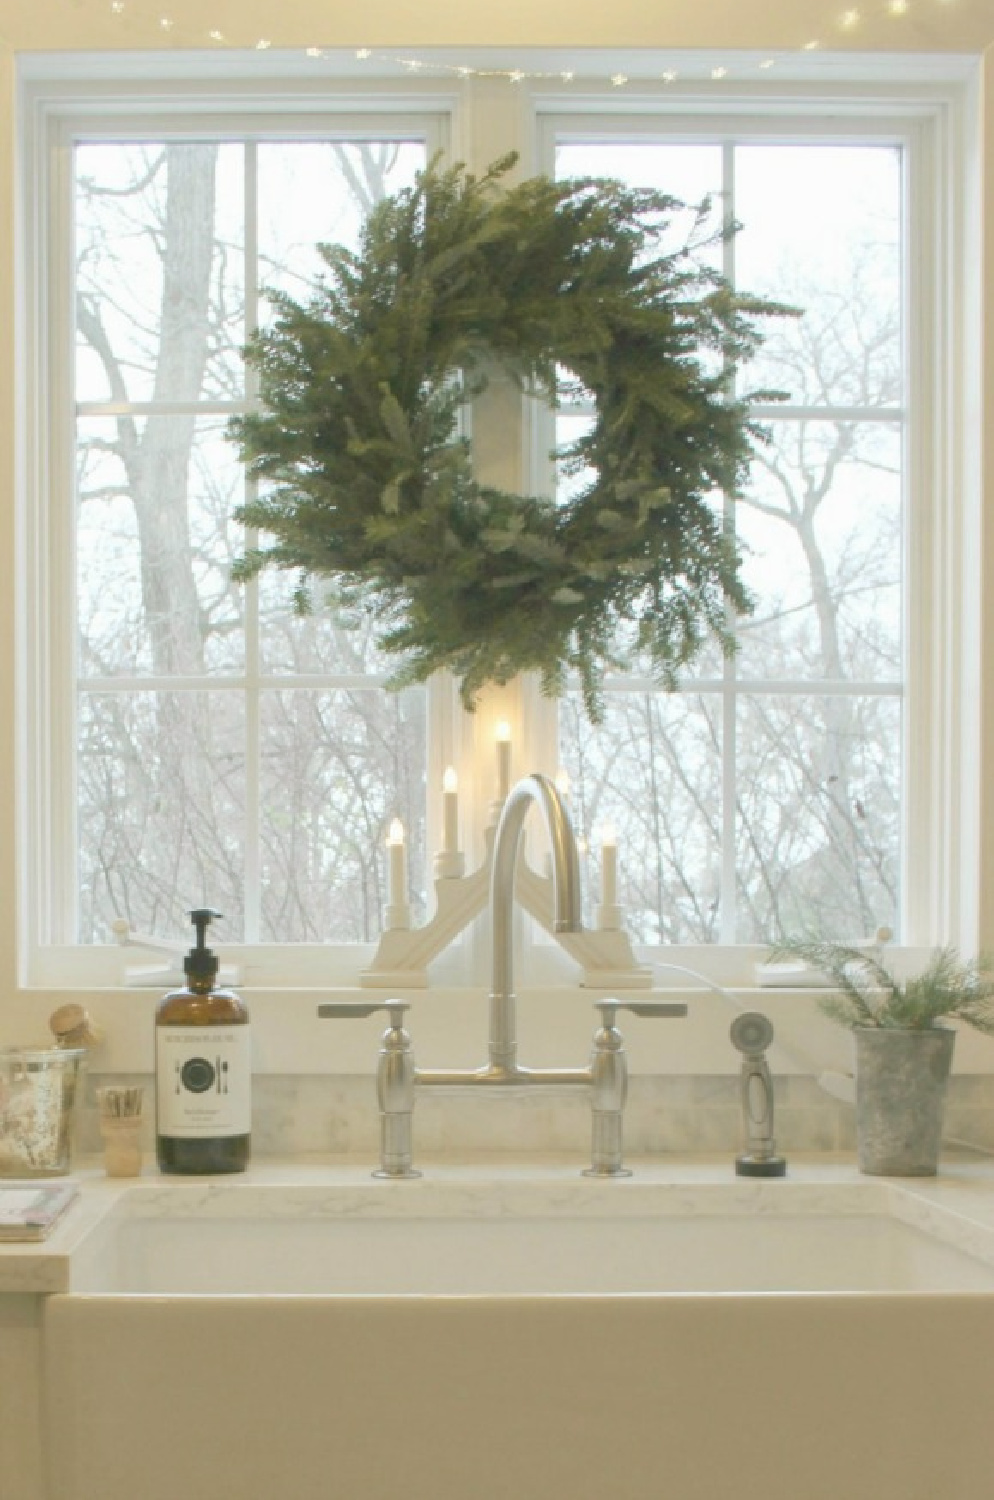 My Christmas kitchen with Scandinavian style and a fresh wreath over farm sink - Hello Lovely Studio. #swedishchristmas